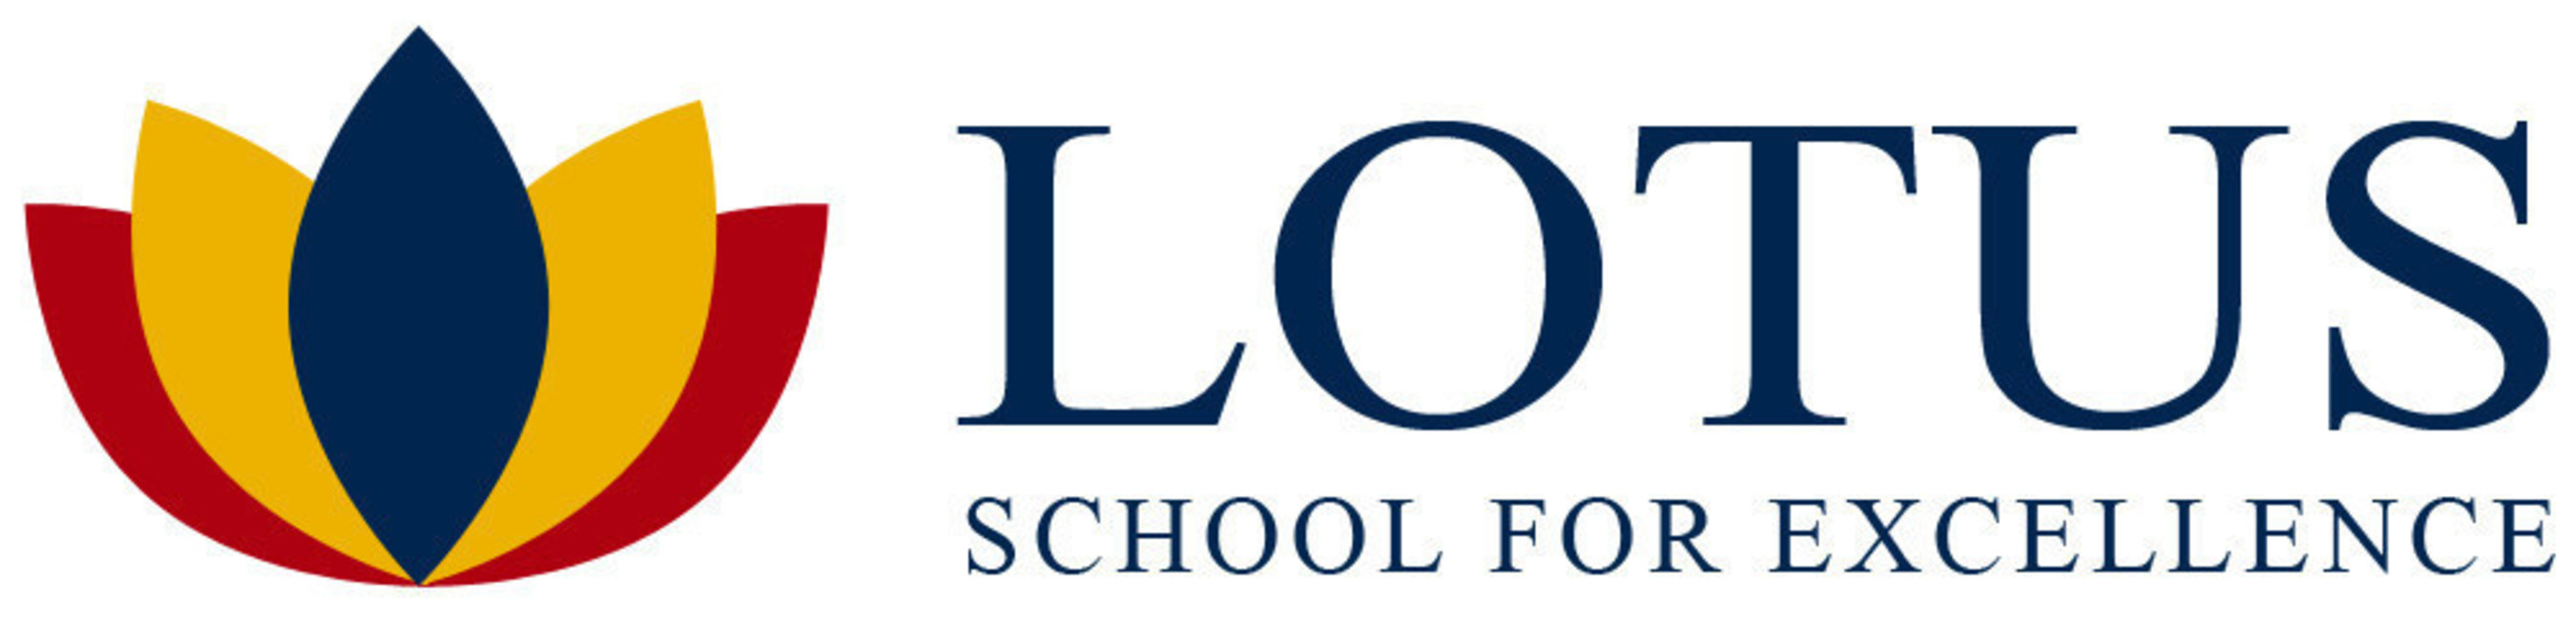 Lotus School for Excellence logo